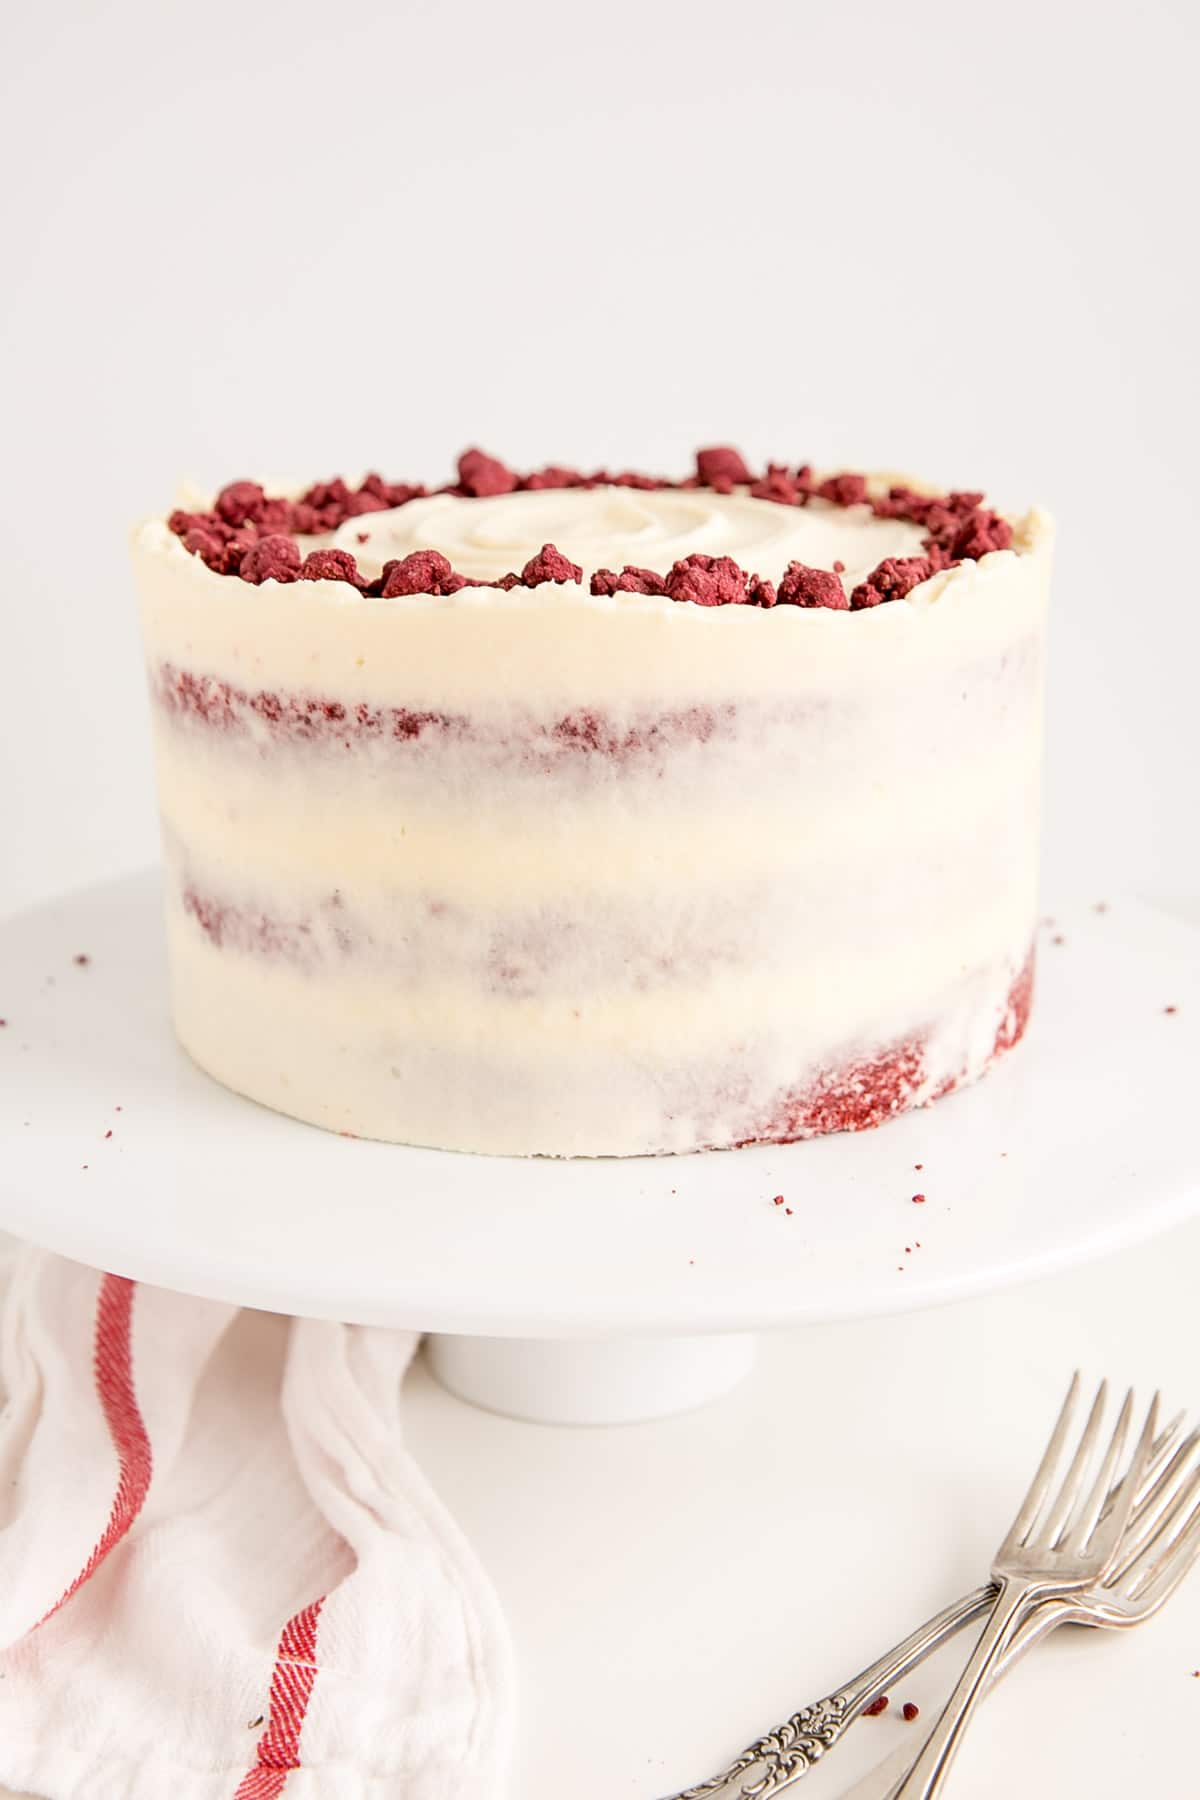 Red velvet cake recipe with cream cheese frosting and red velvet crumble.